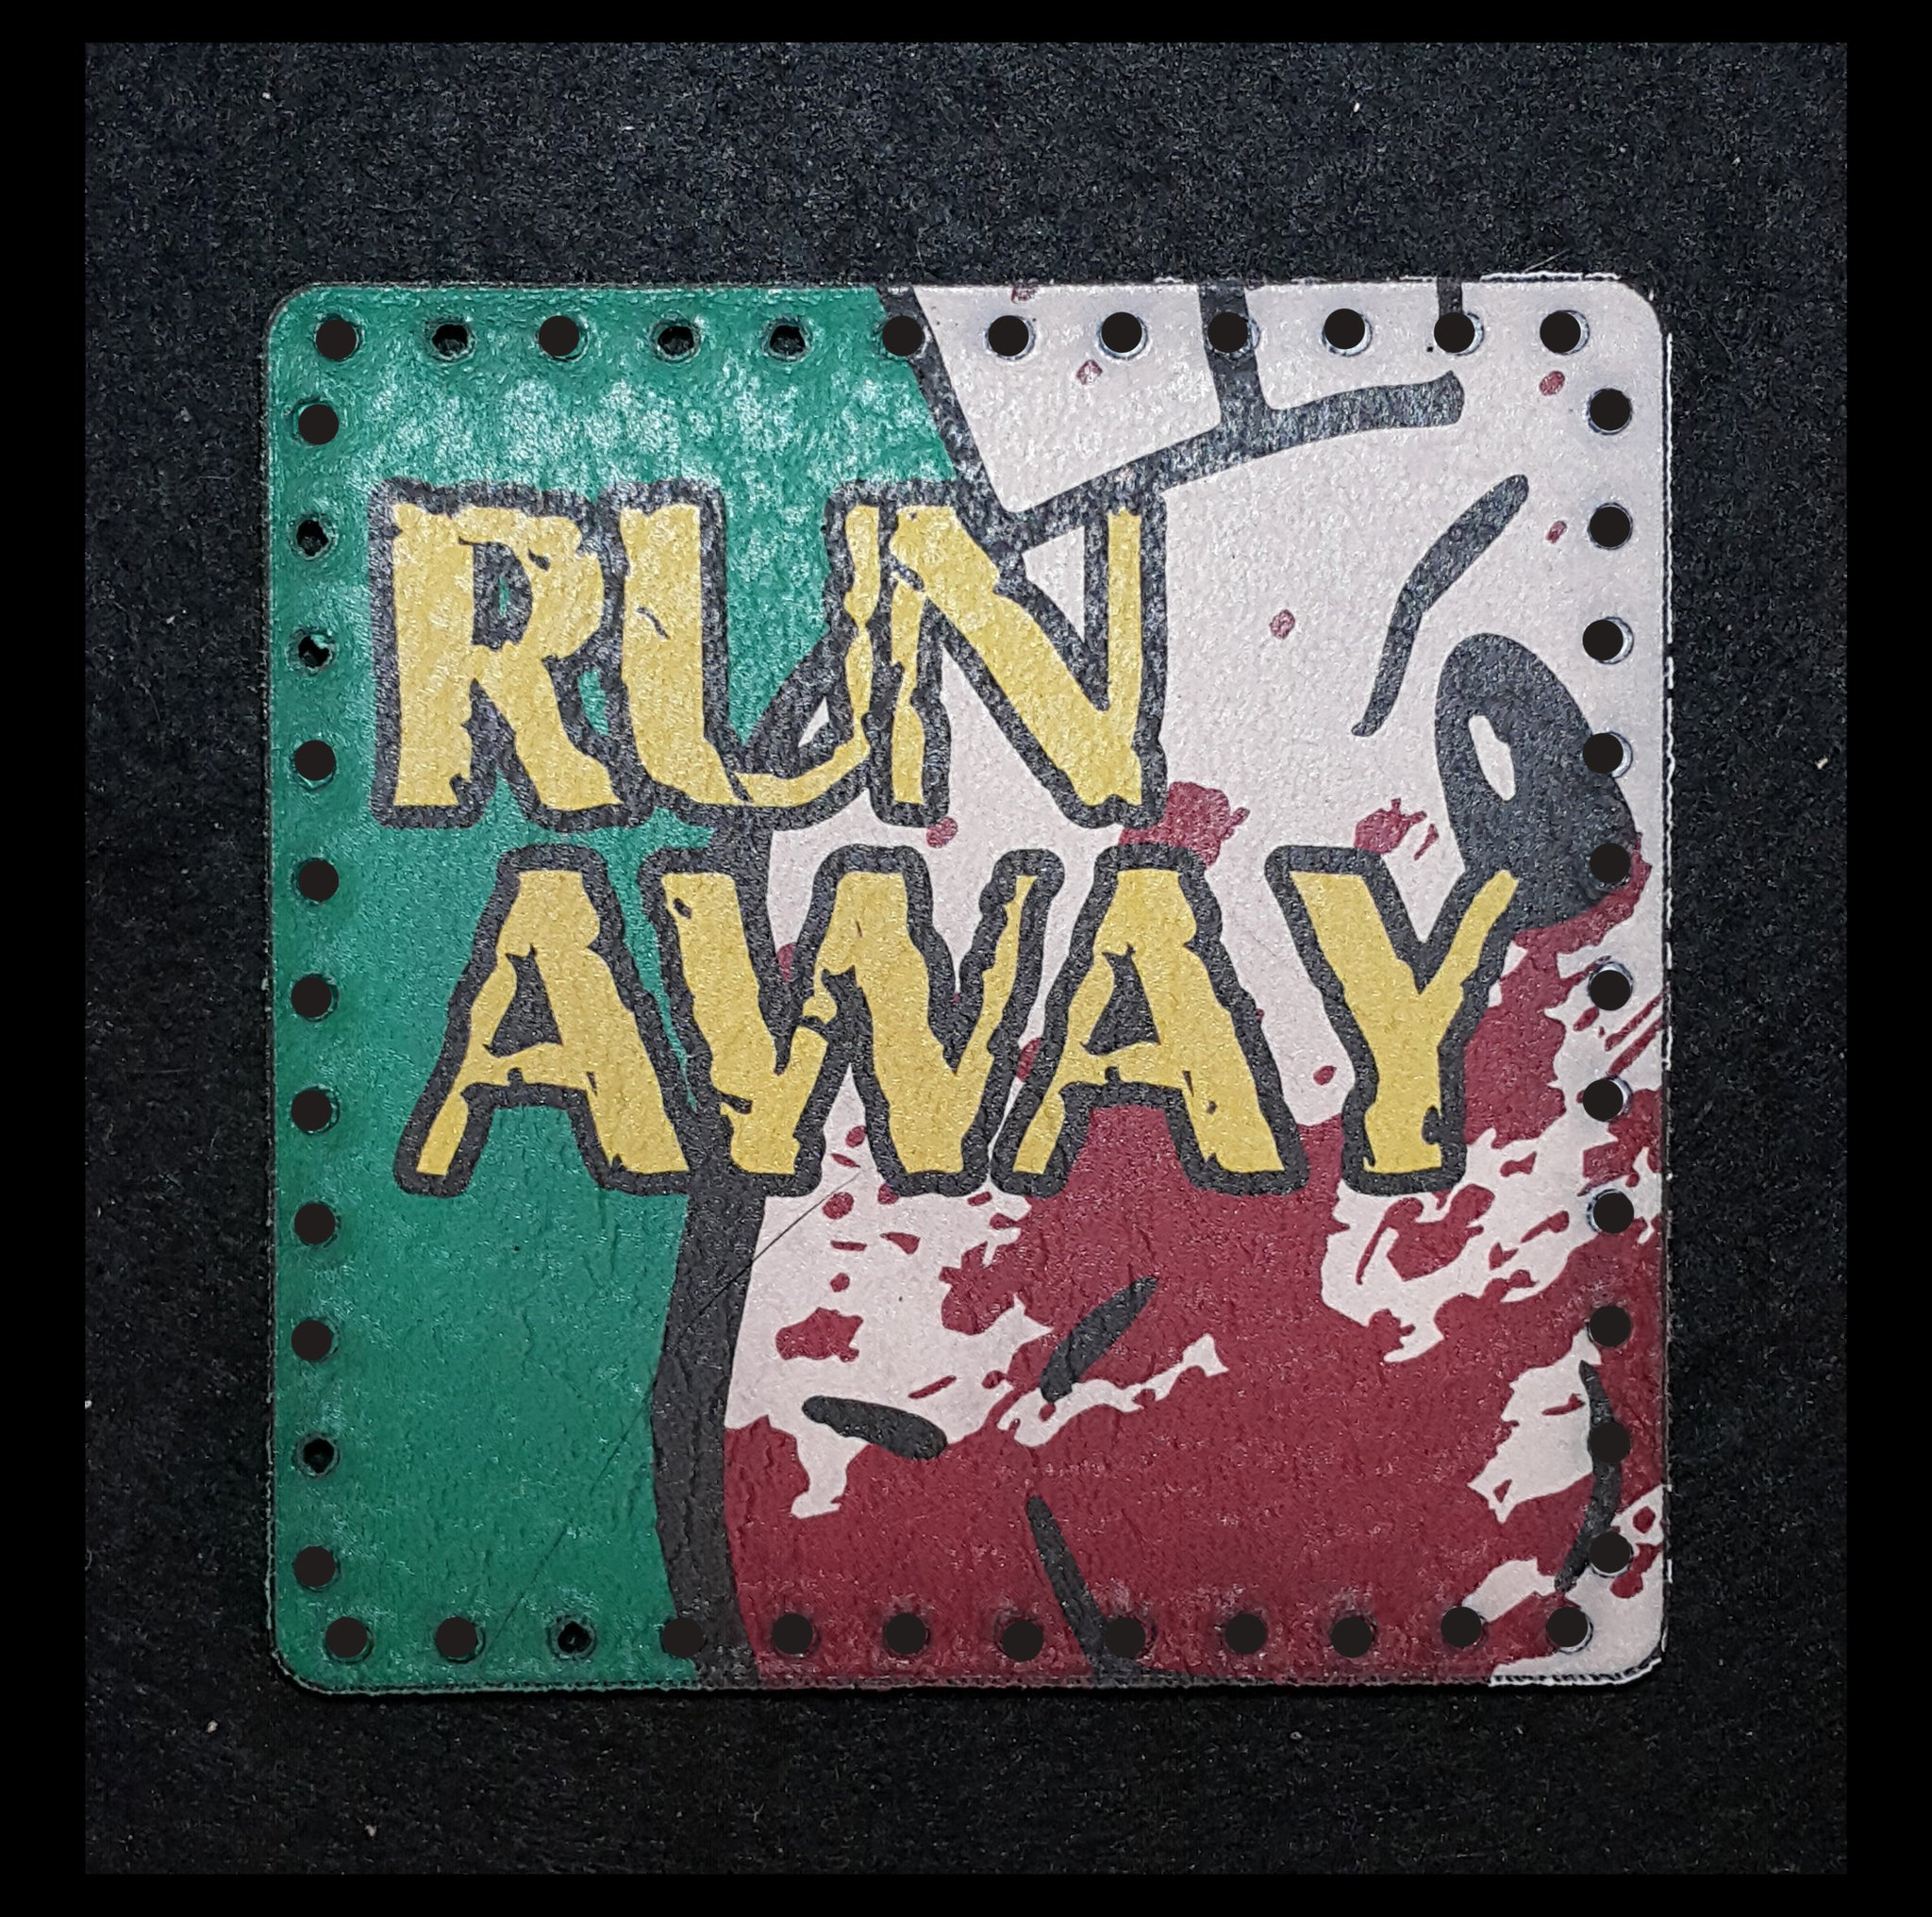 Run Away! Run Away! (Monty Python) 3.8 inch Leather Patch